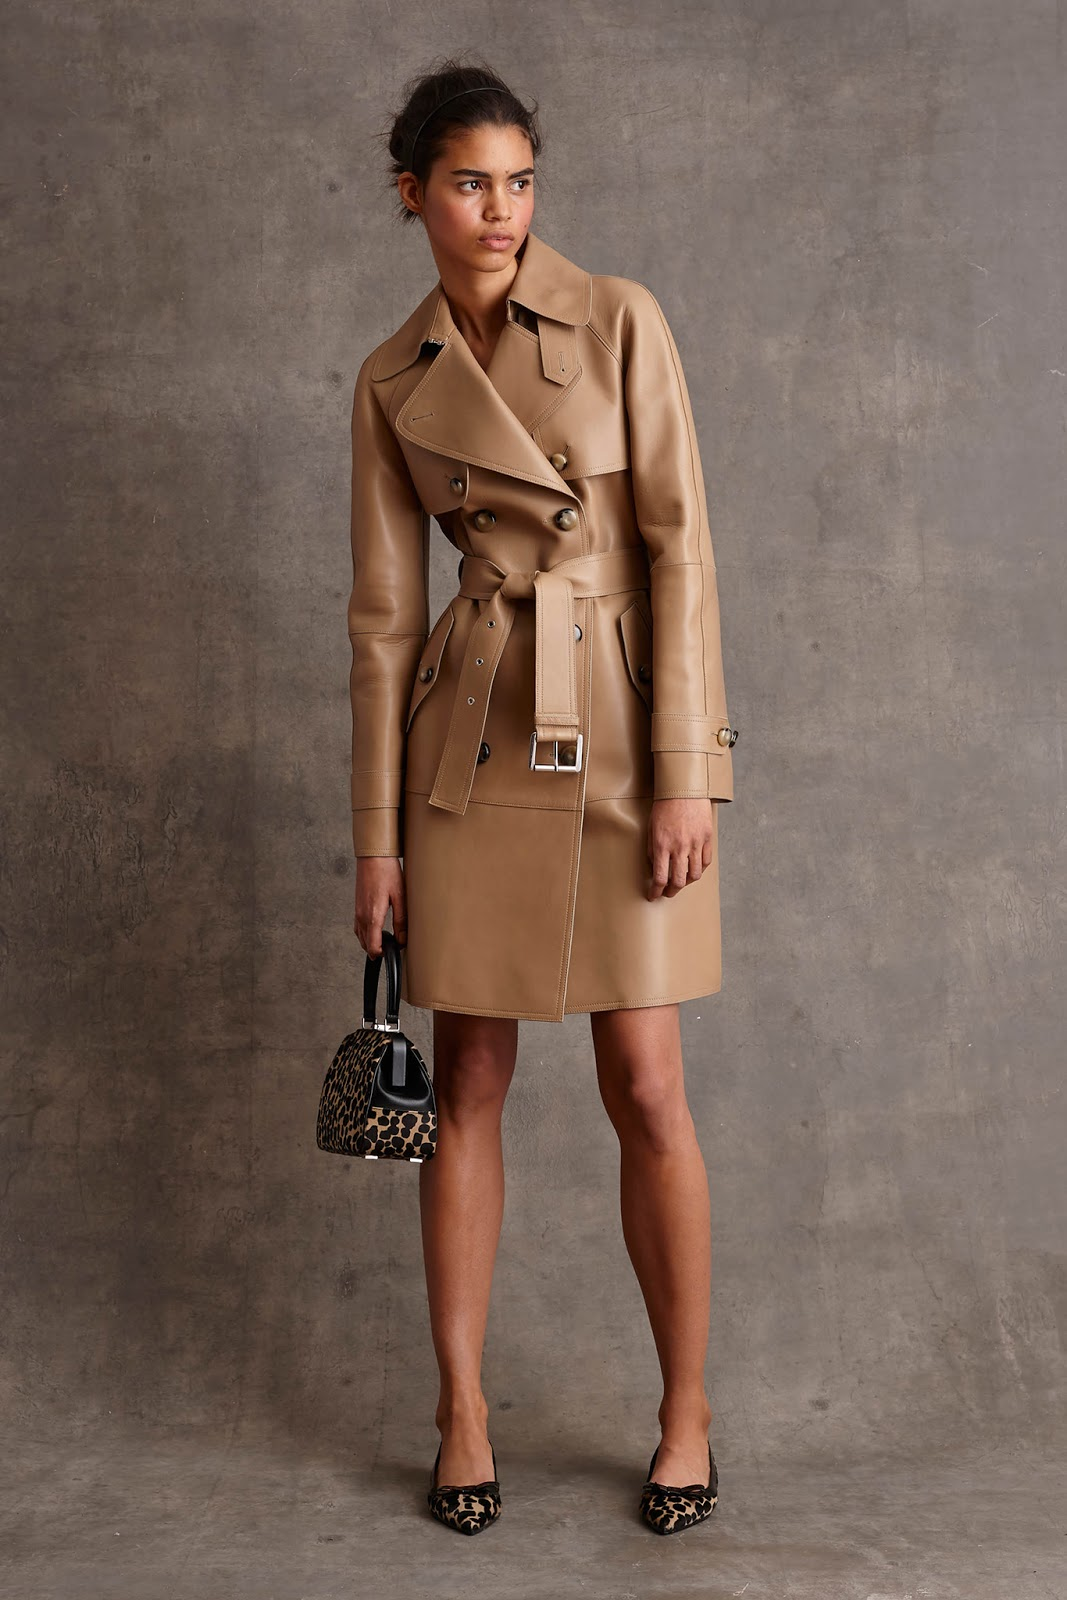 via fashioned by love | Michael Kors Pre-Fall 2015 | camel trends | 2015